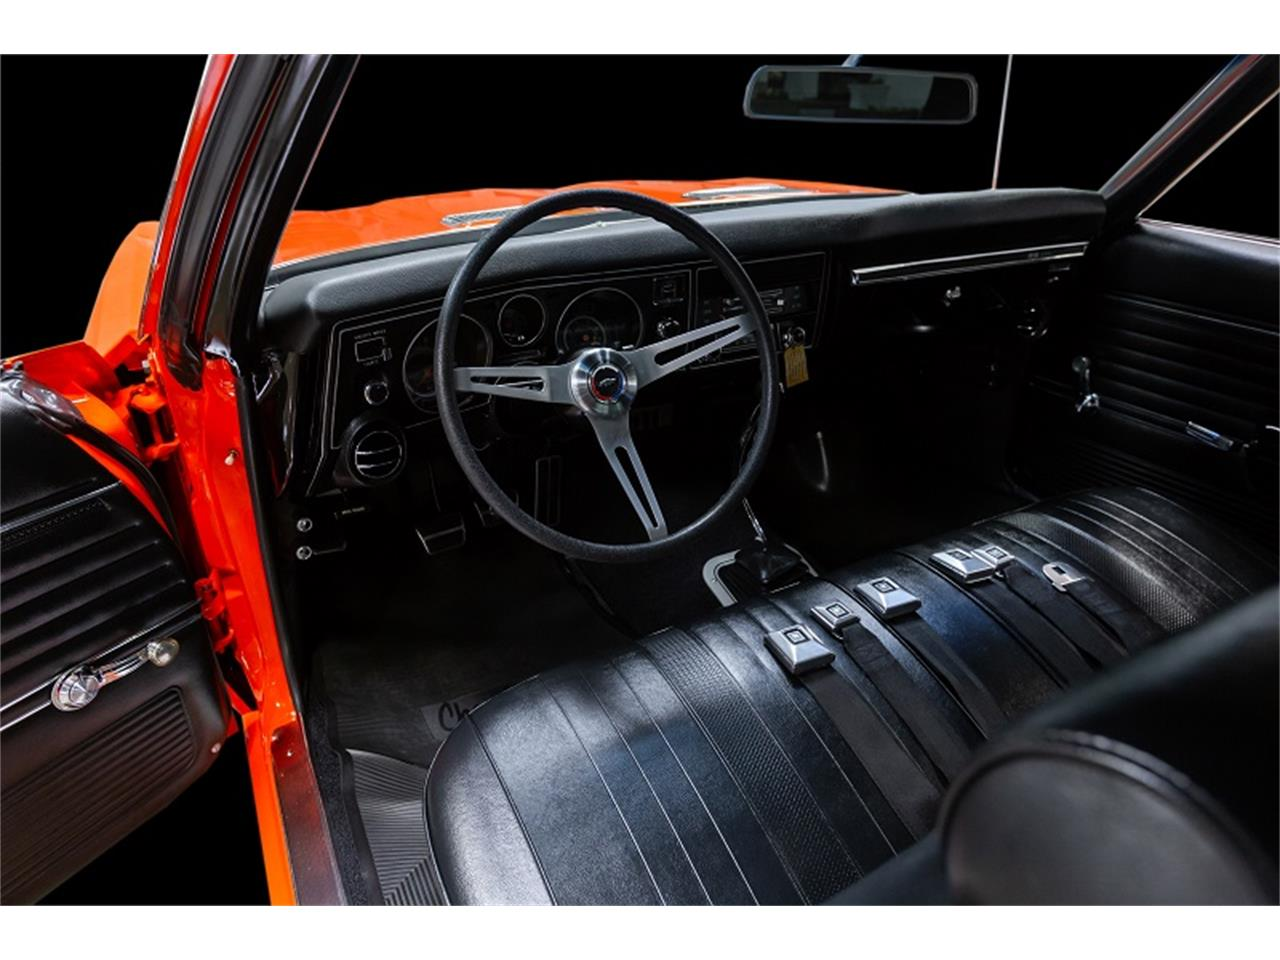 Large Picture of 1969 Chevelle SS located in Pennsylvania Auction Vehicle Offered by Central Pennsylvania Auto Auction - Q5CY